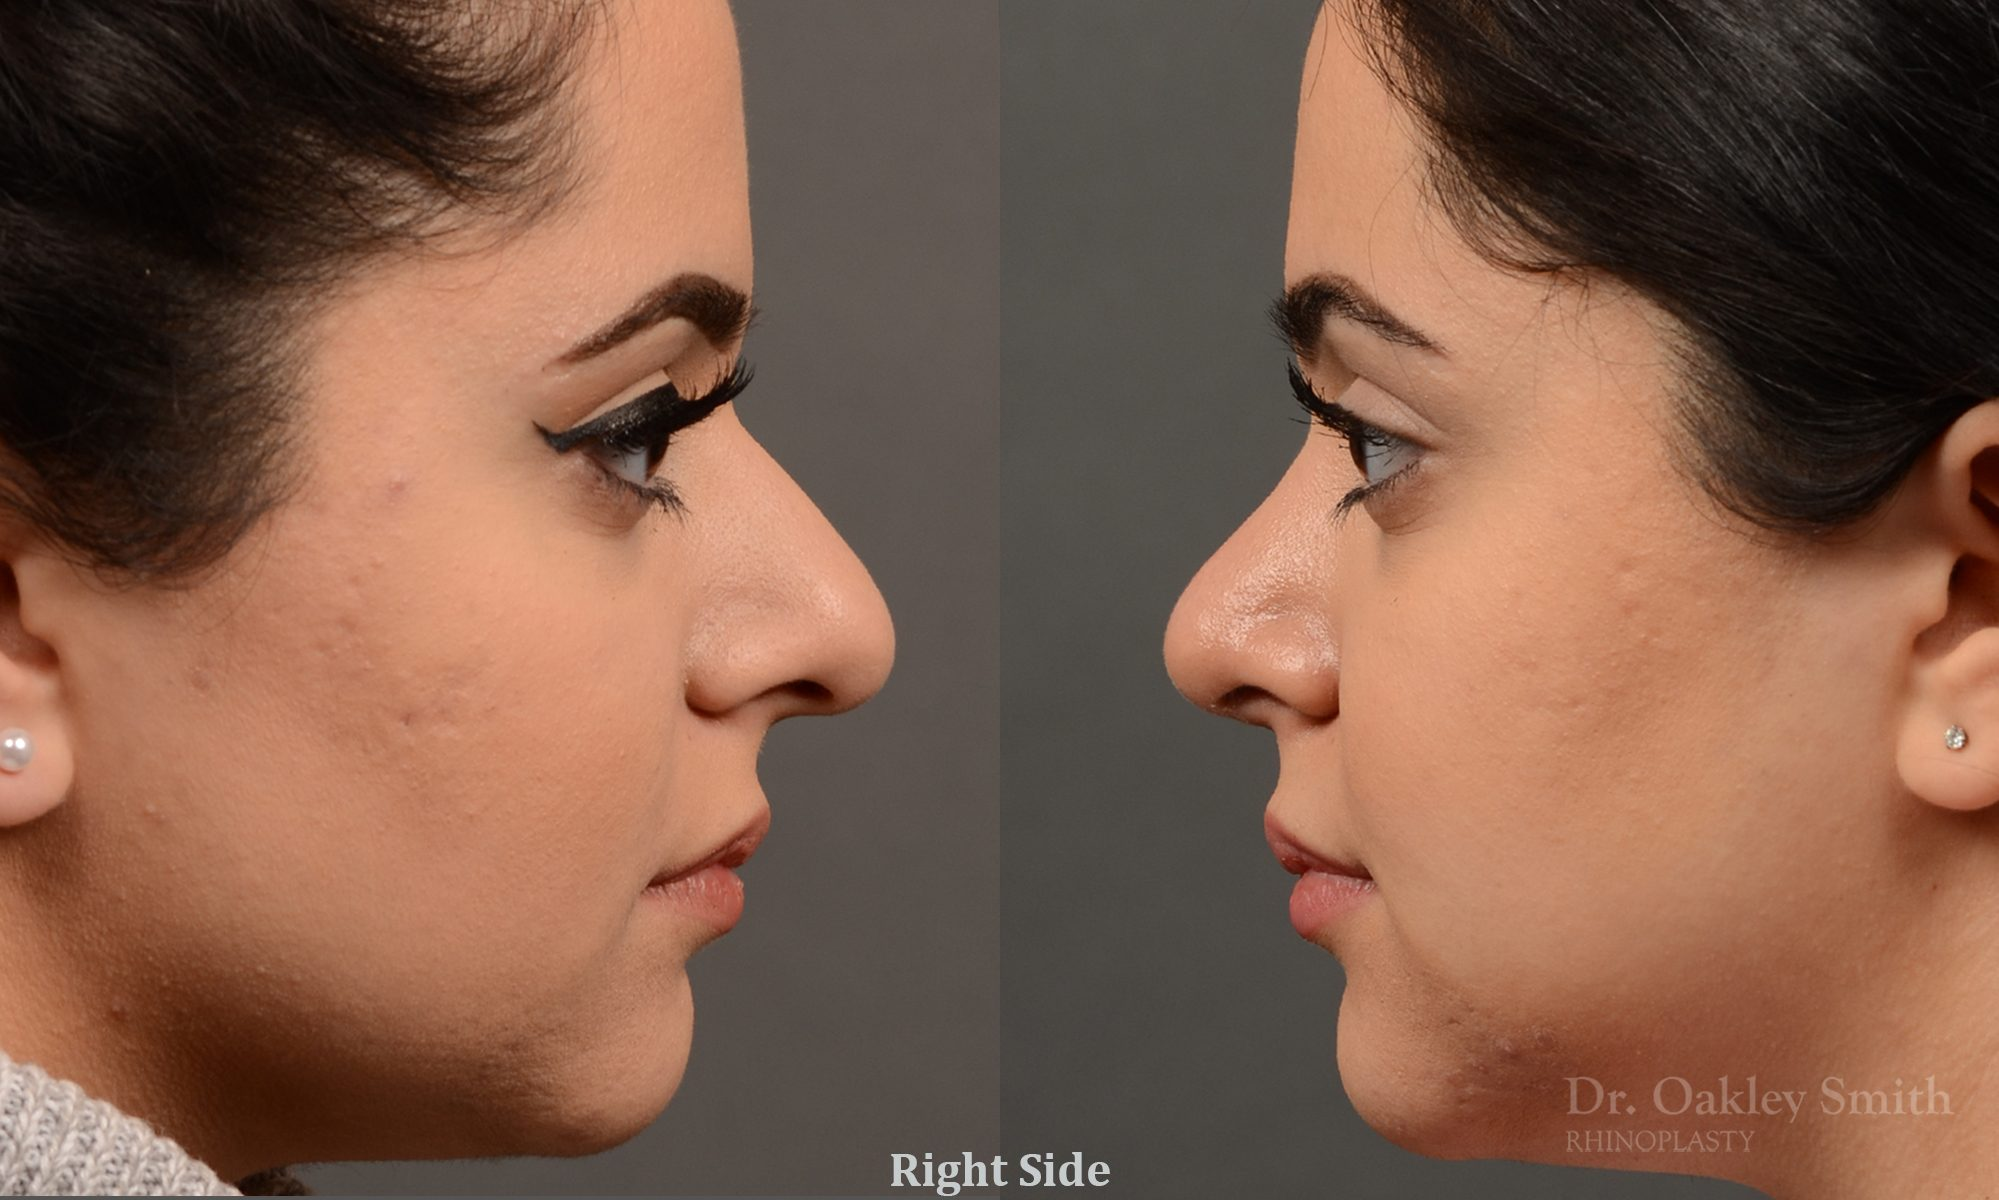 This young lady disliked the way her nose 'hooked'.